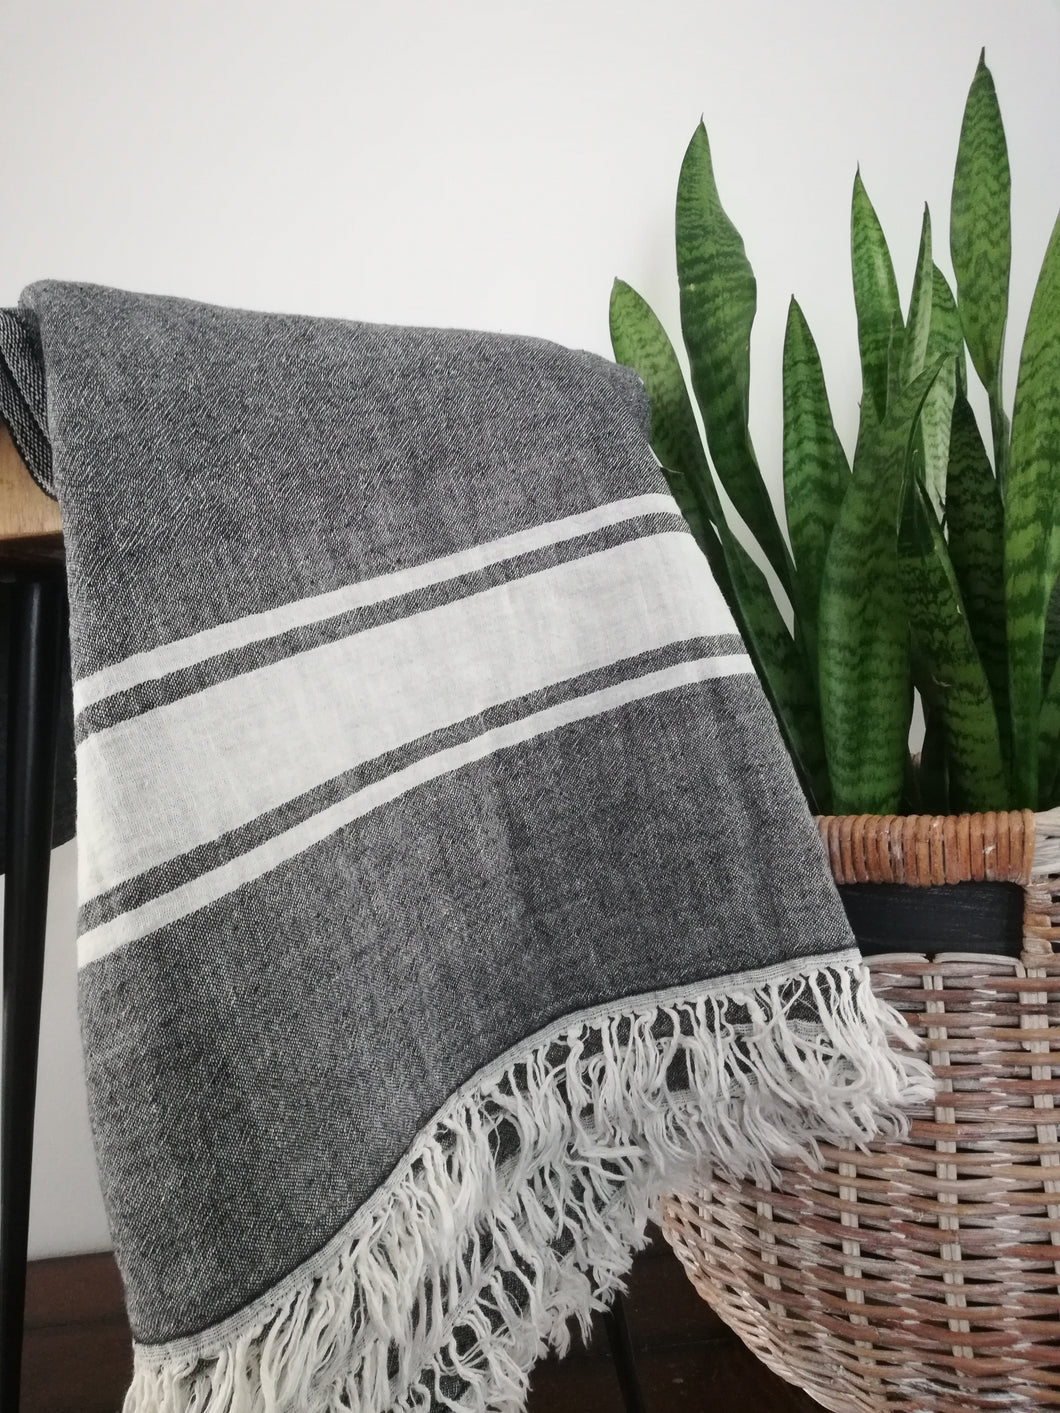 Didim Throw( Charcoal / Cream) - Artisan Village Design